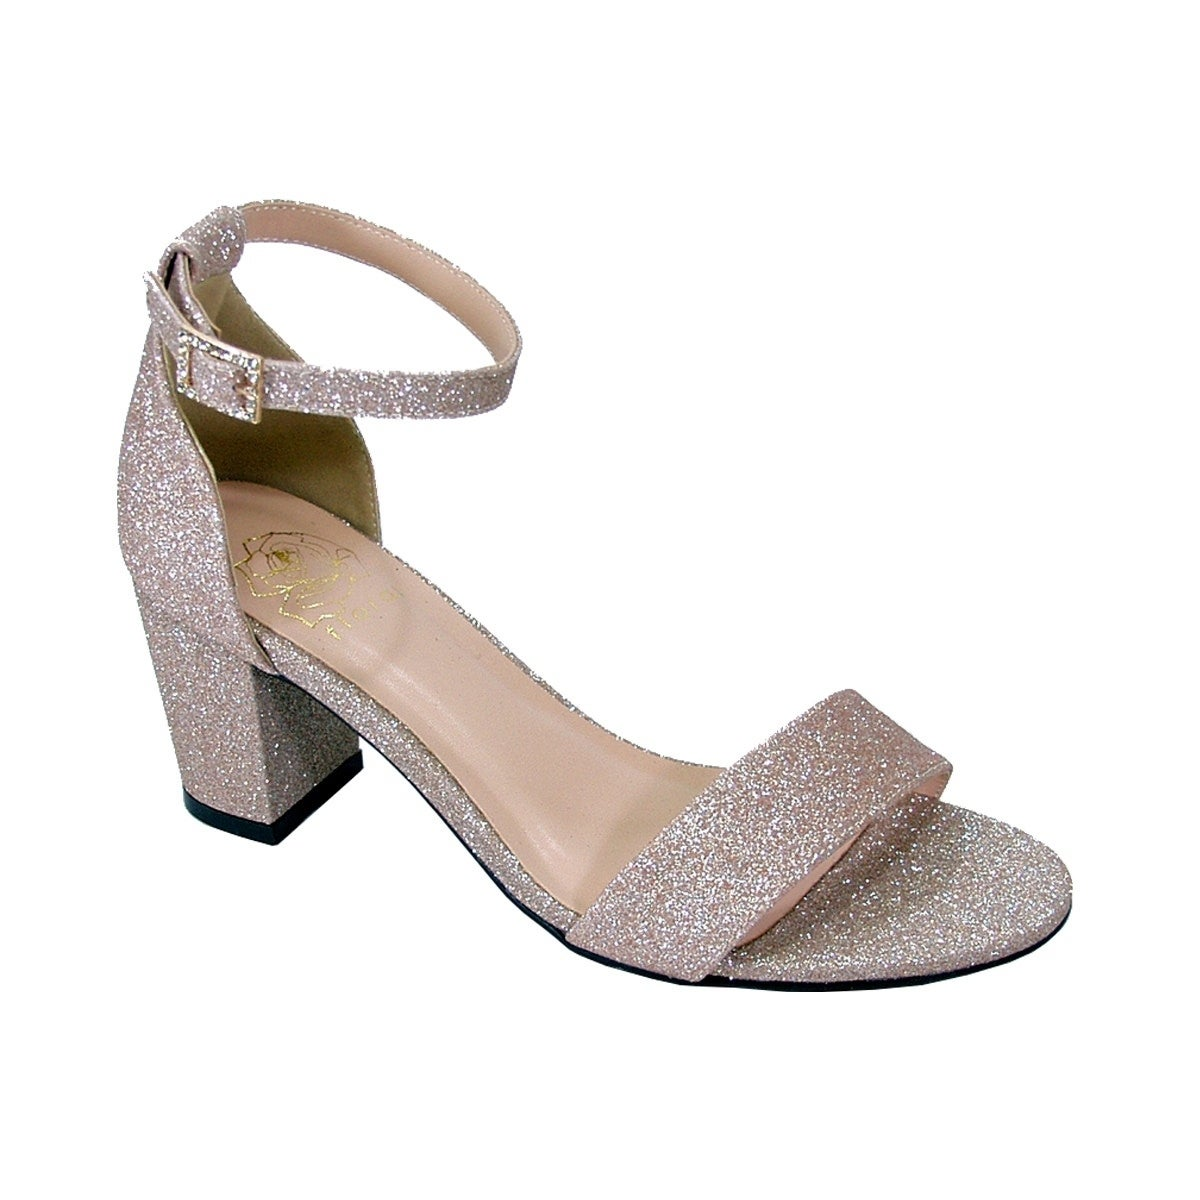 6244b8a6cd9 Shop FLORAL Adele Women Wide Width Satin Glittery Block Heel Party ...